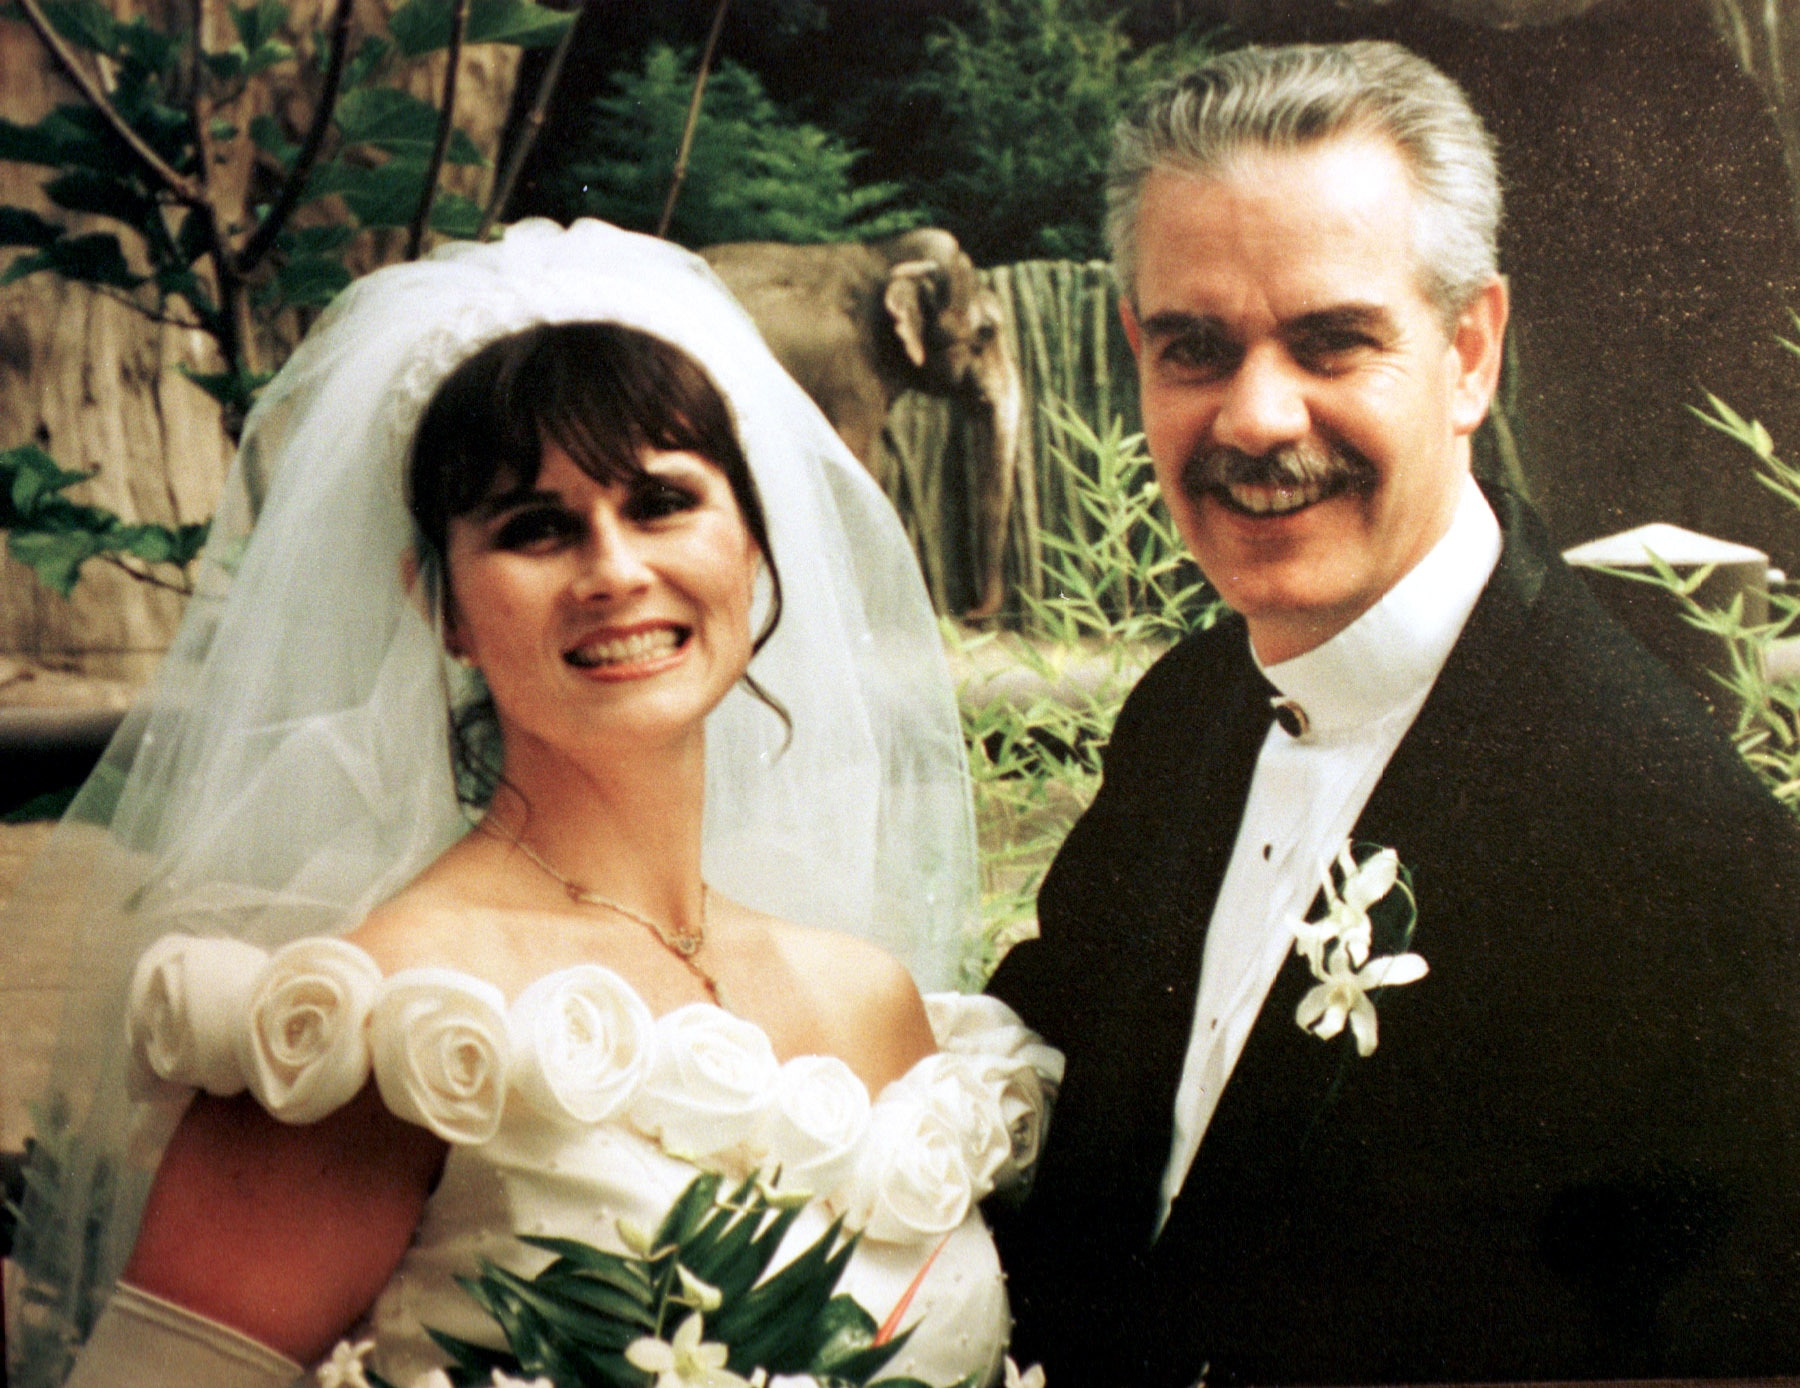 Rob Haubner and Susan Miller on their wedding day three years before they were murdered by Rwandan guerrillas.